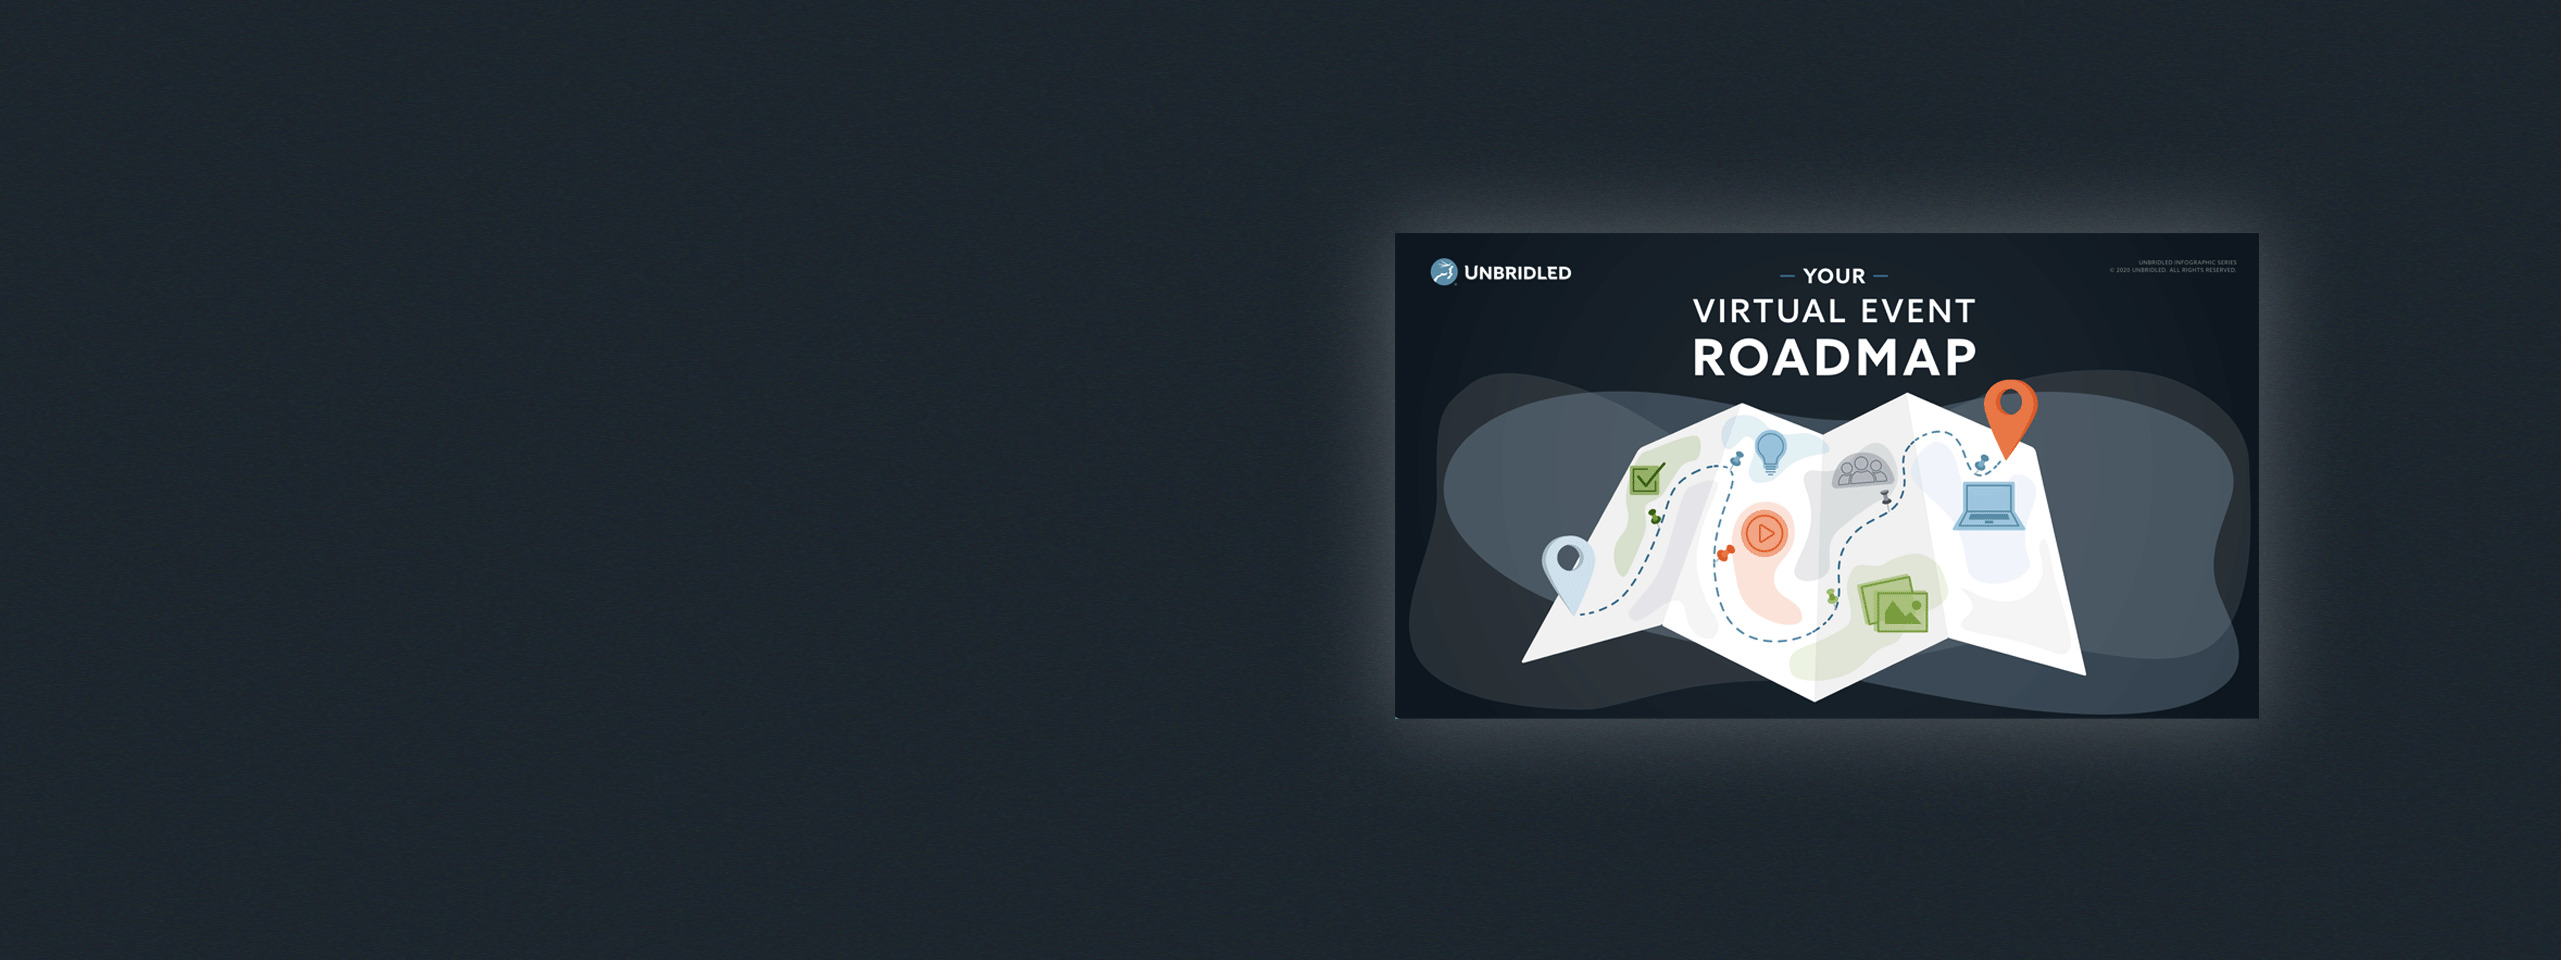 Your virtual event roadmap